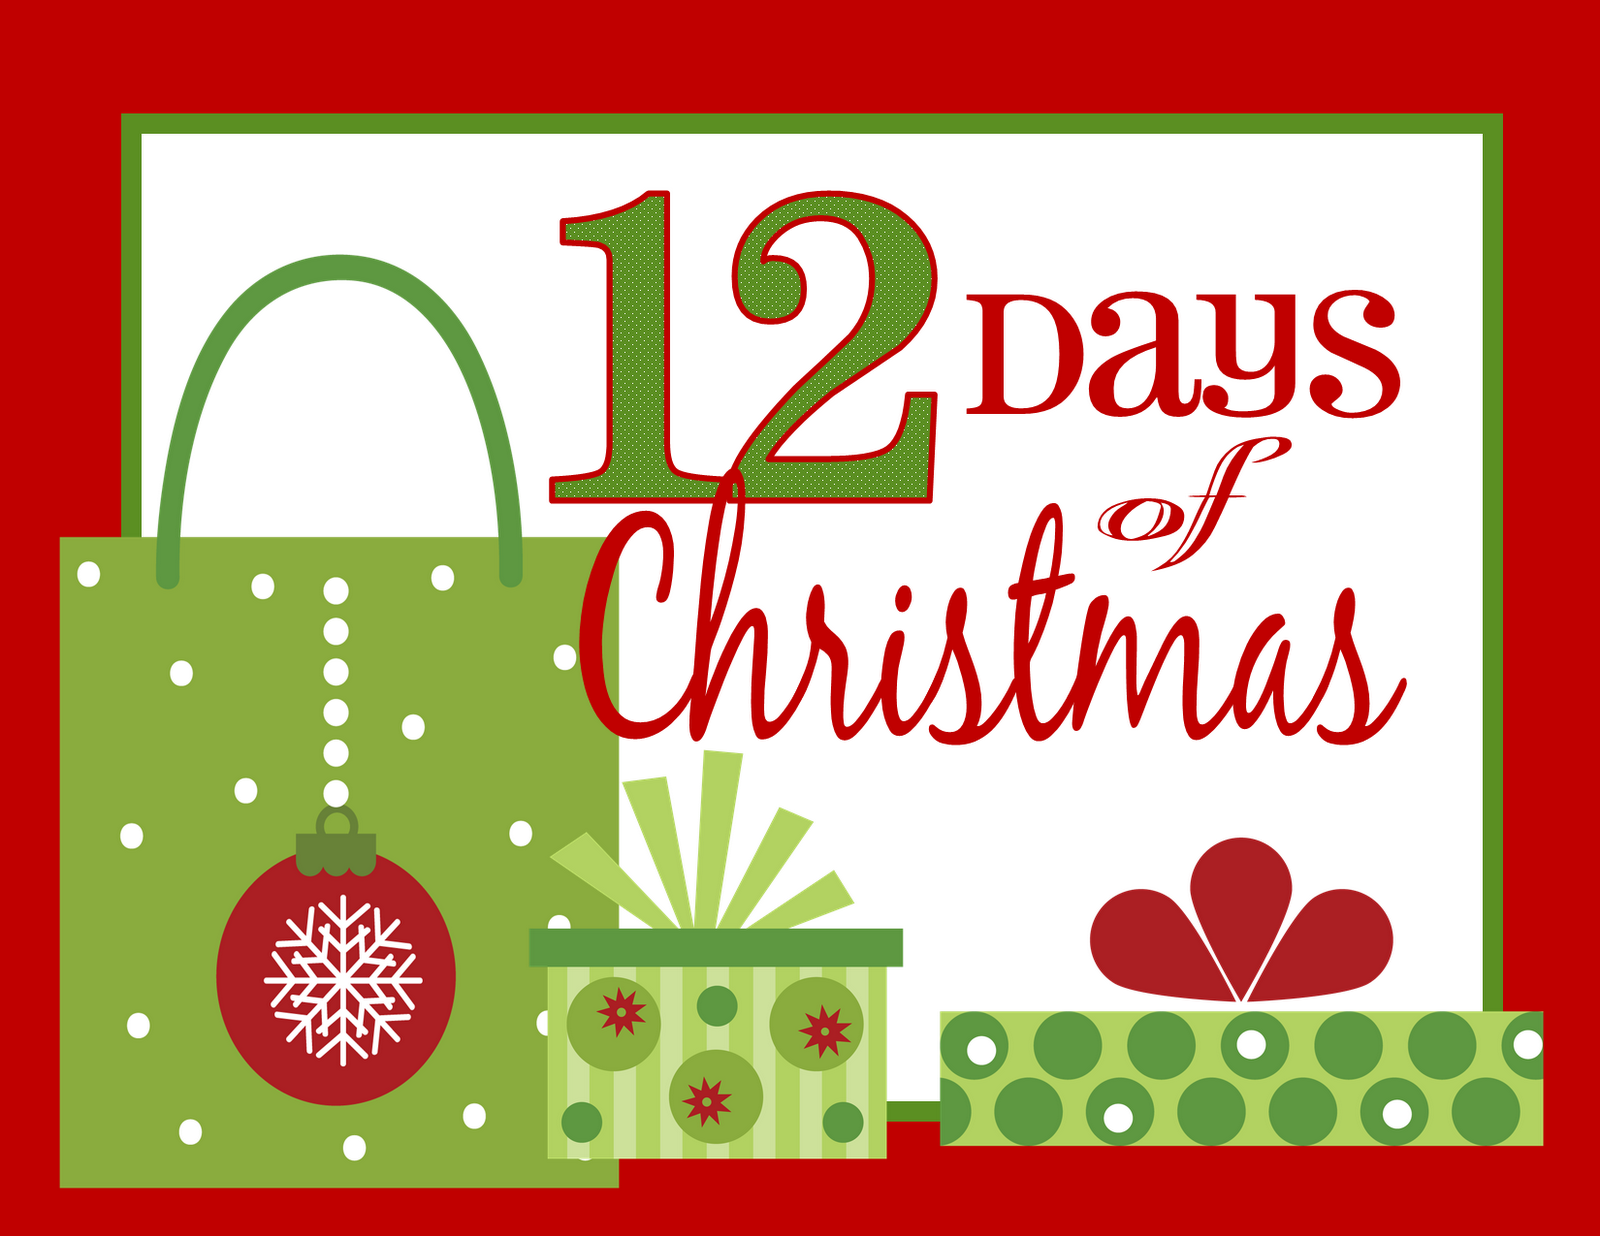 12 Days Of Christmas.12 Days Of Christmas At The Classic American Classic